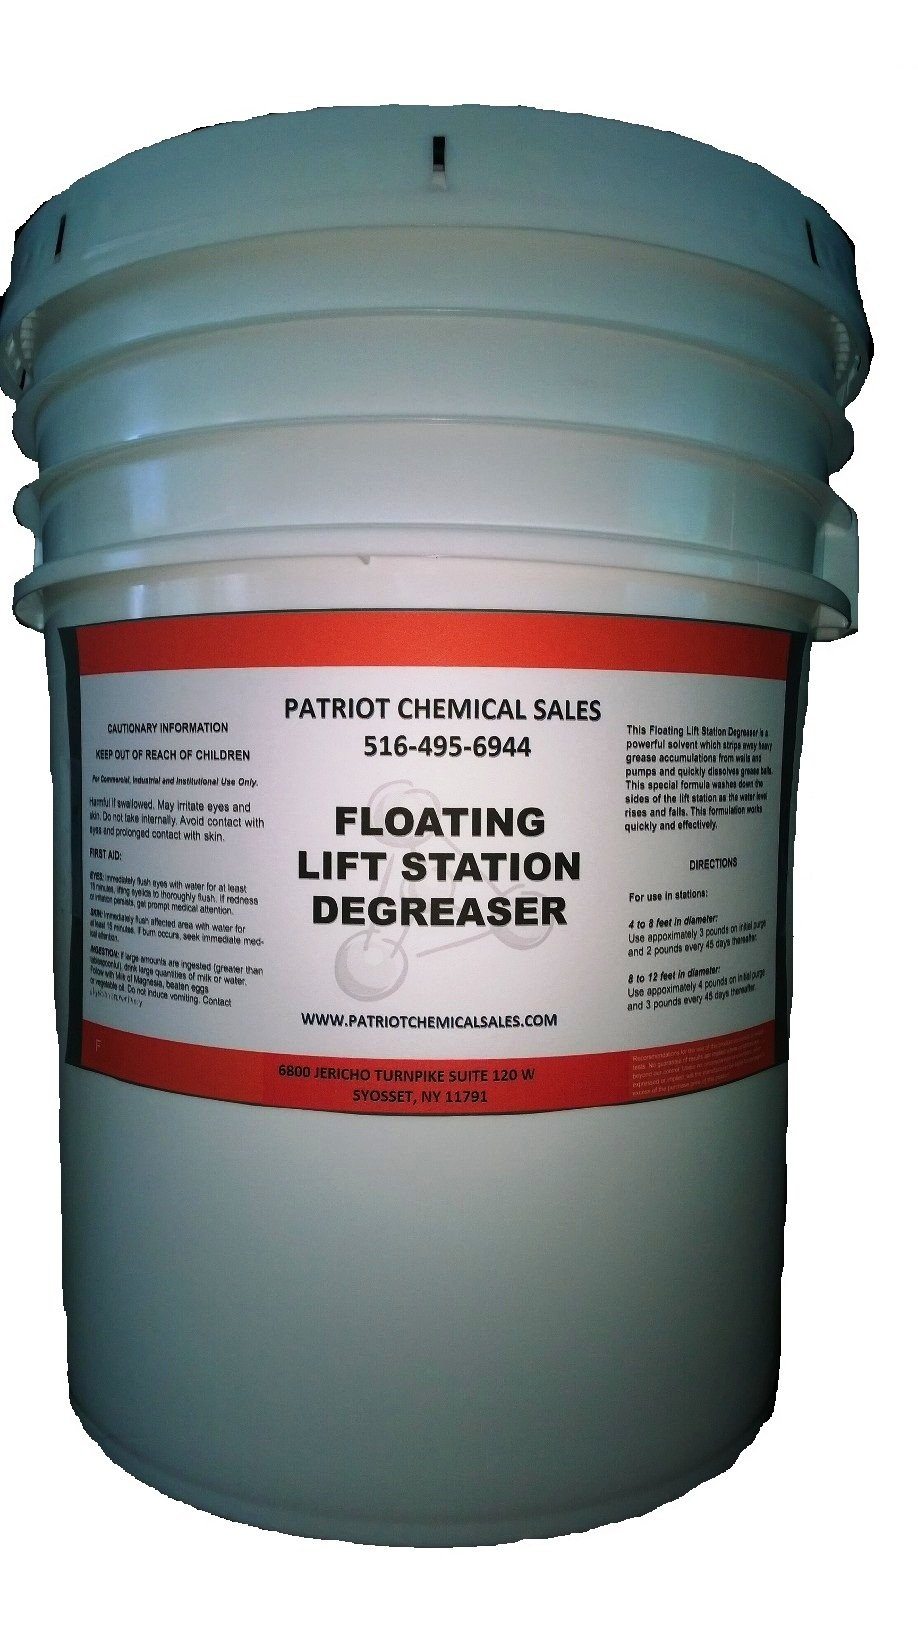 Patriot Chemical Sales 25 Pounds Floating Lift Station Degreaser Granule Industrial Strength by Patriot Chemical Sales